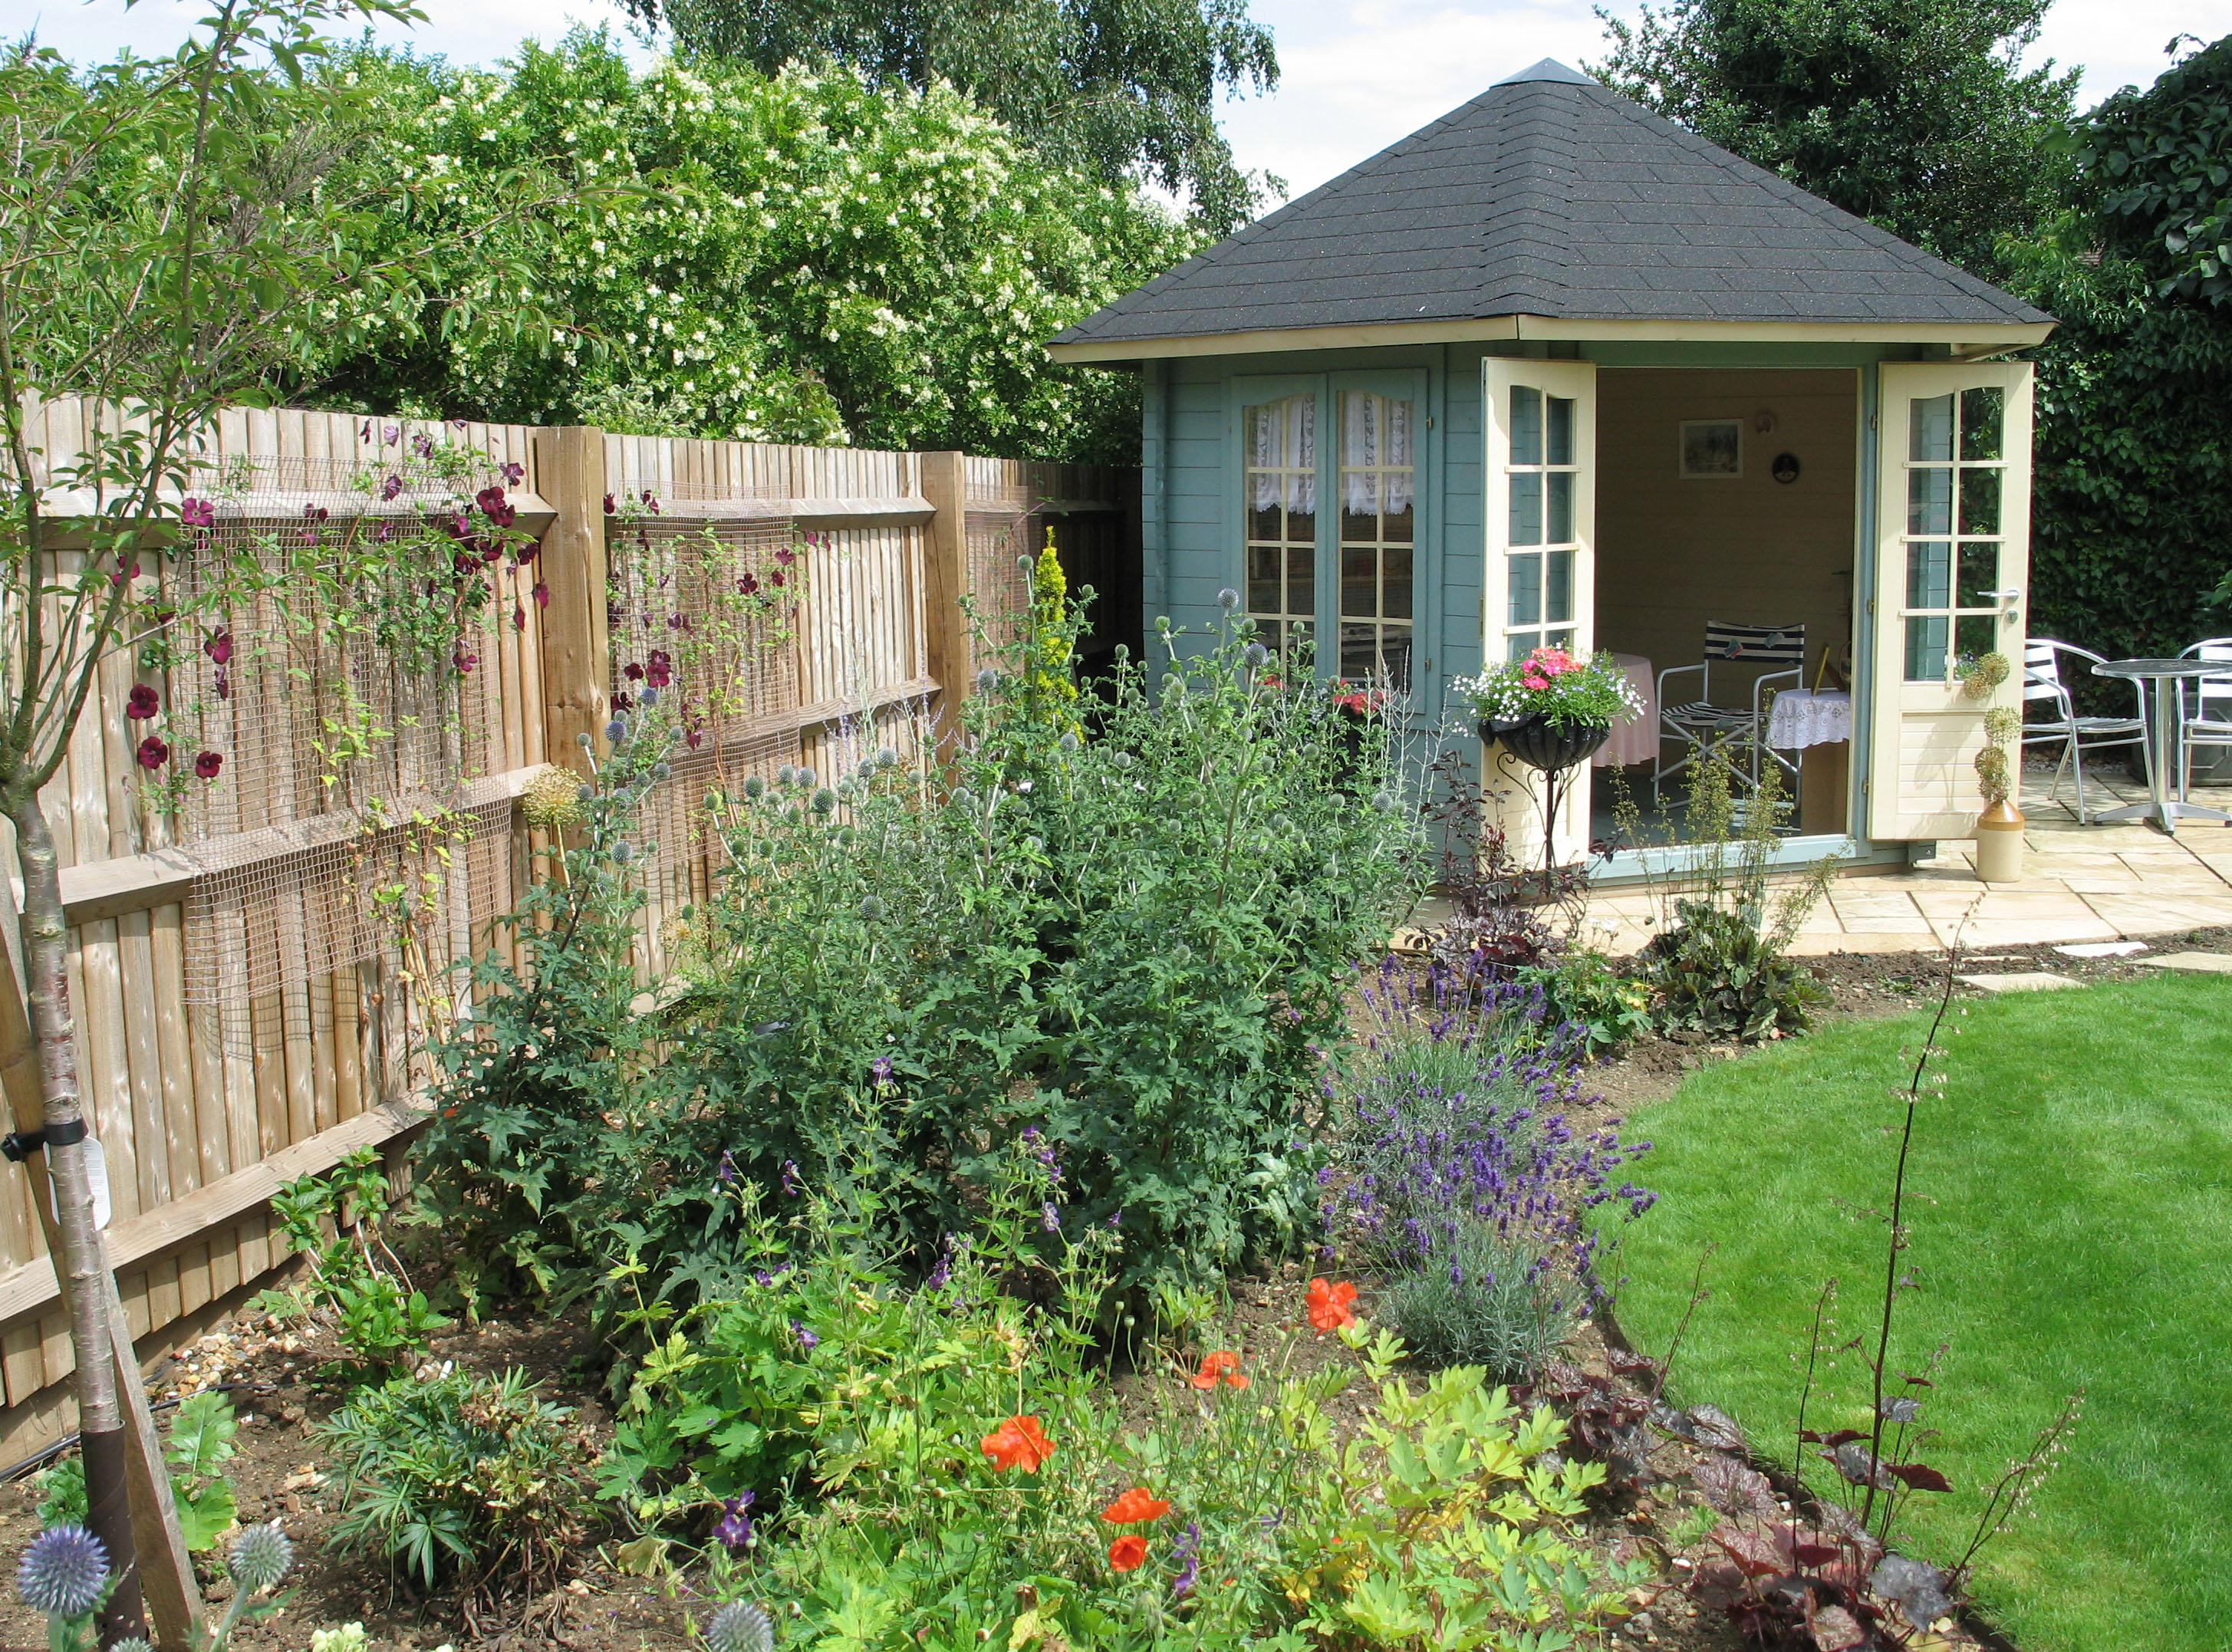 Border with summer house karen tizzard garden design for Garden houses designs